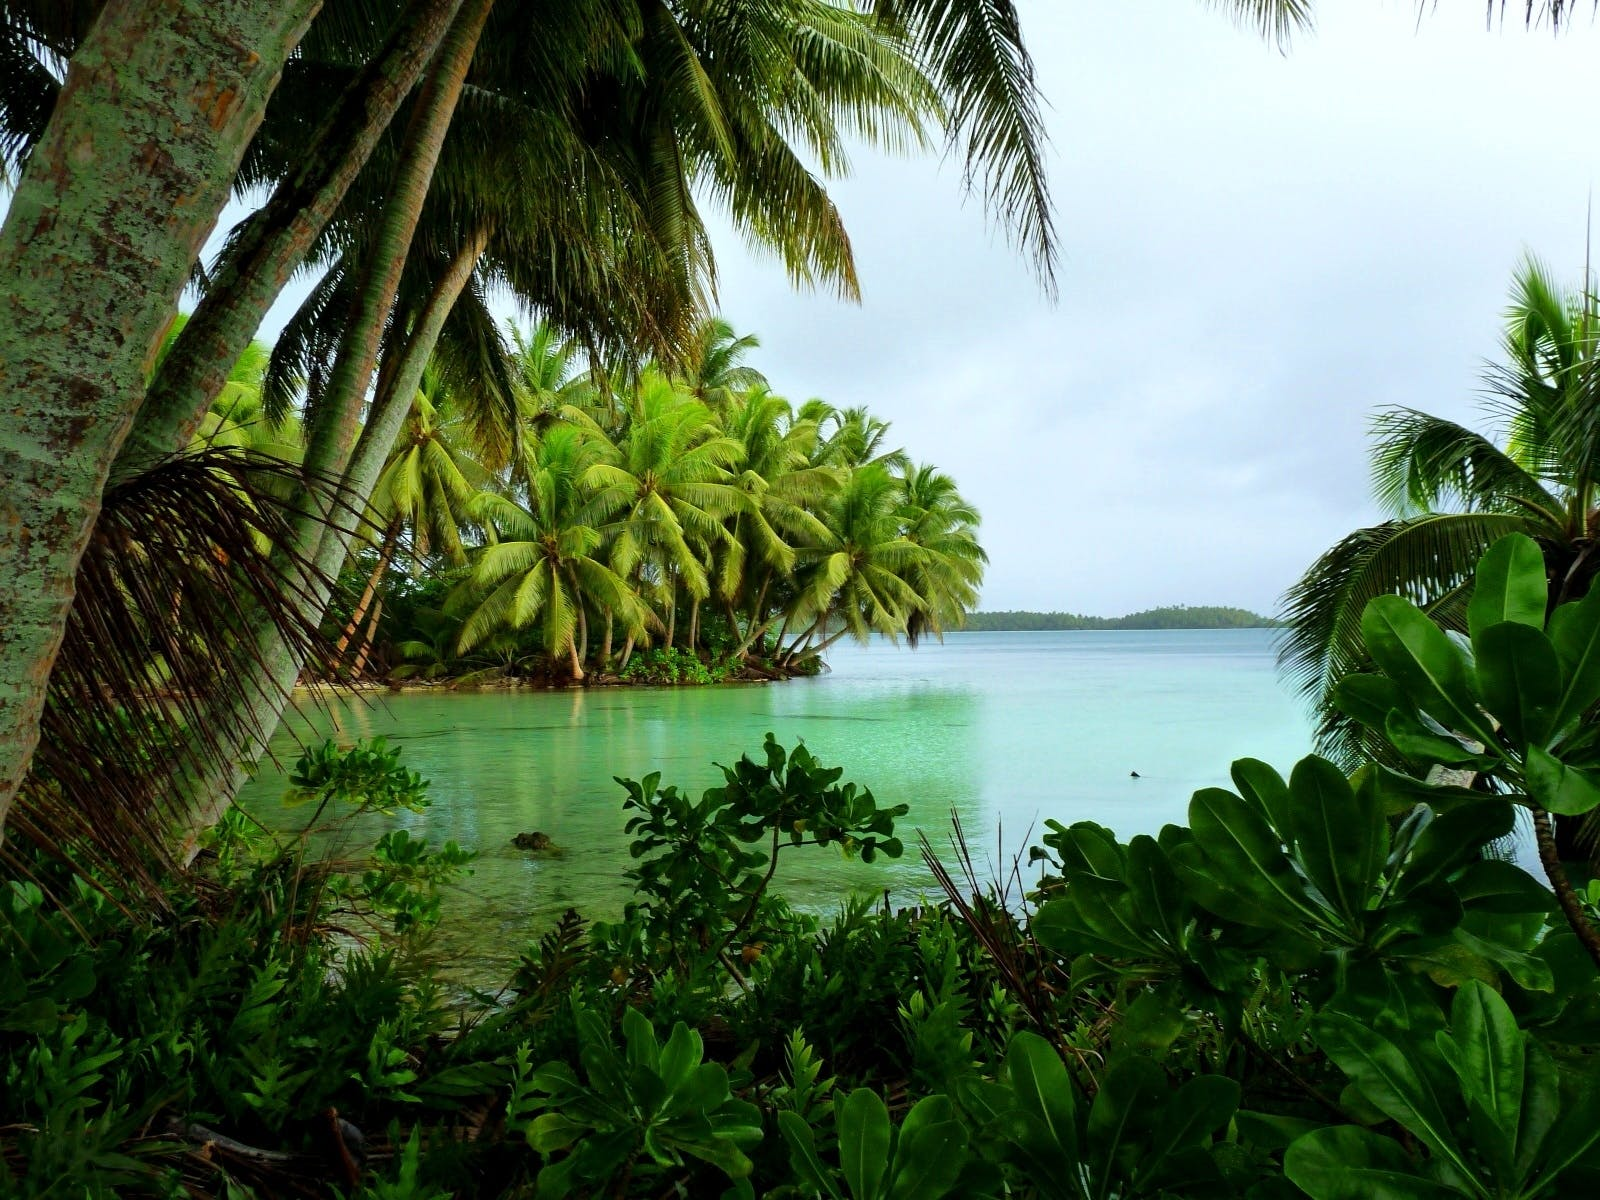 Carolines Tropical Moist Forests